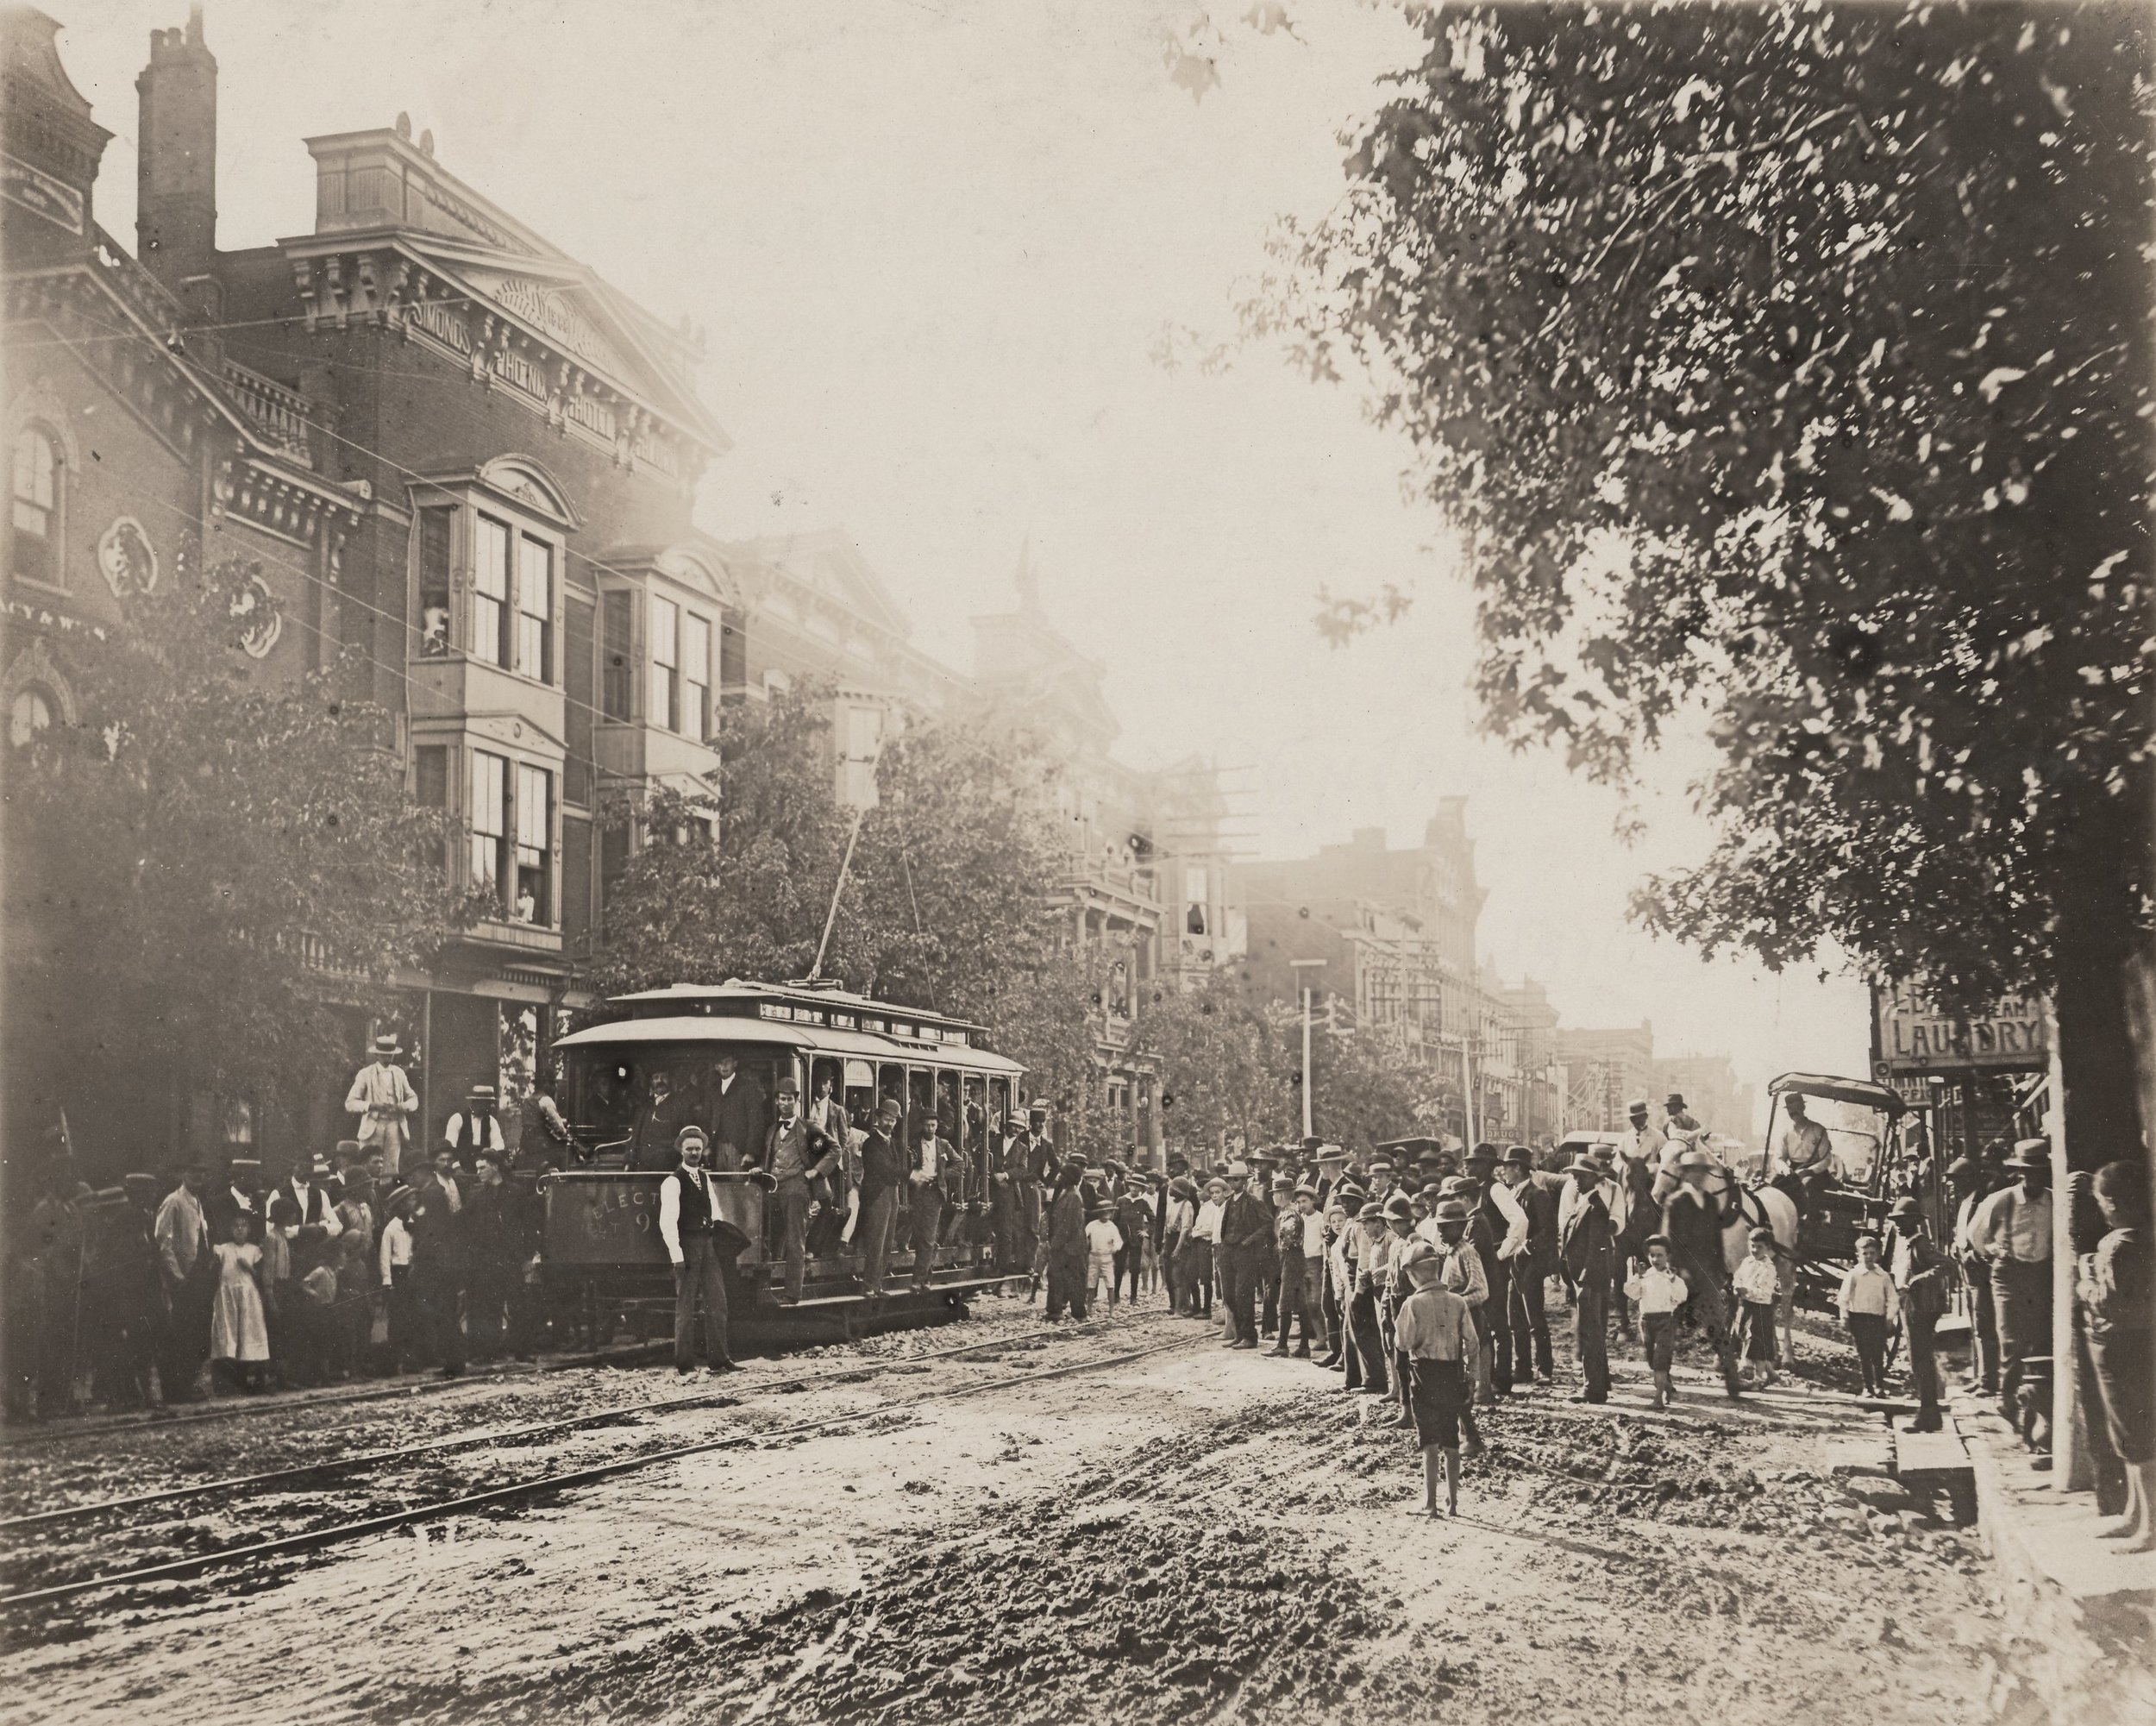 A Streetcar in Downtown Lexington